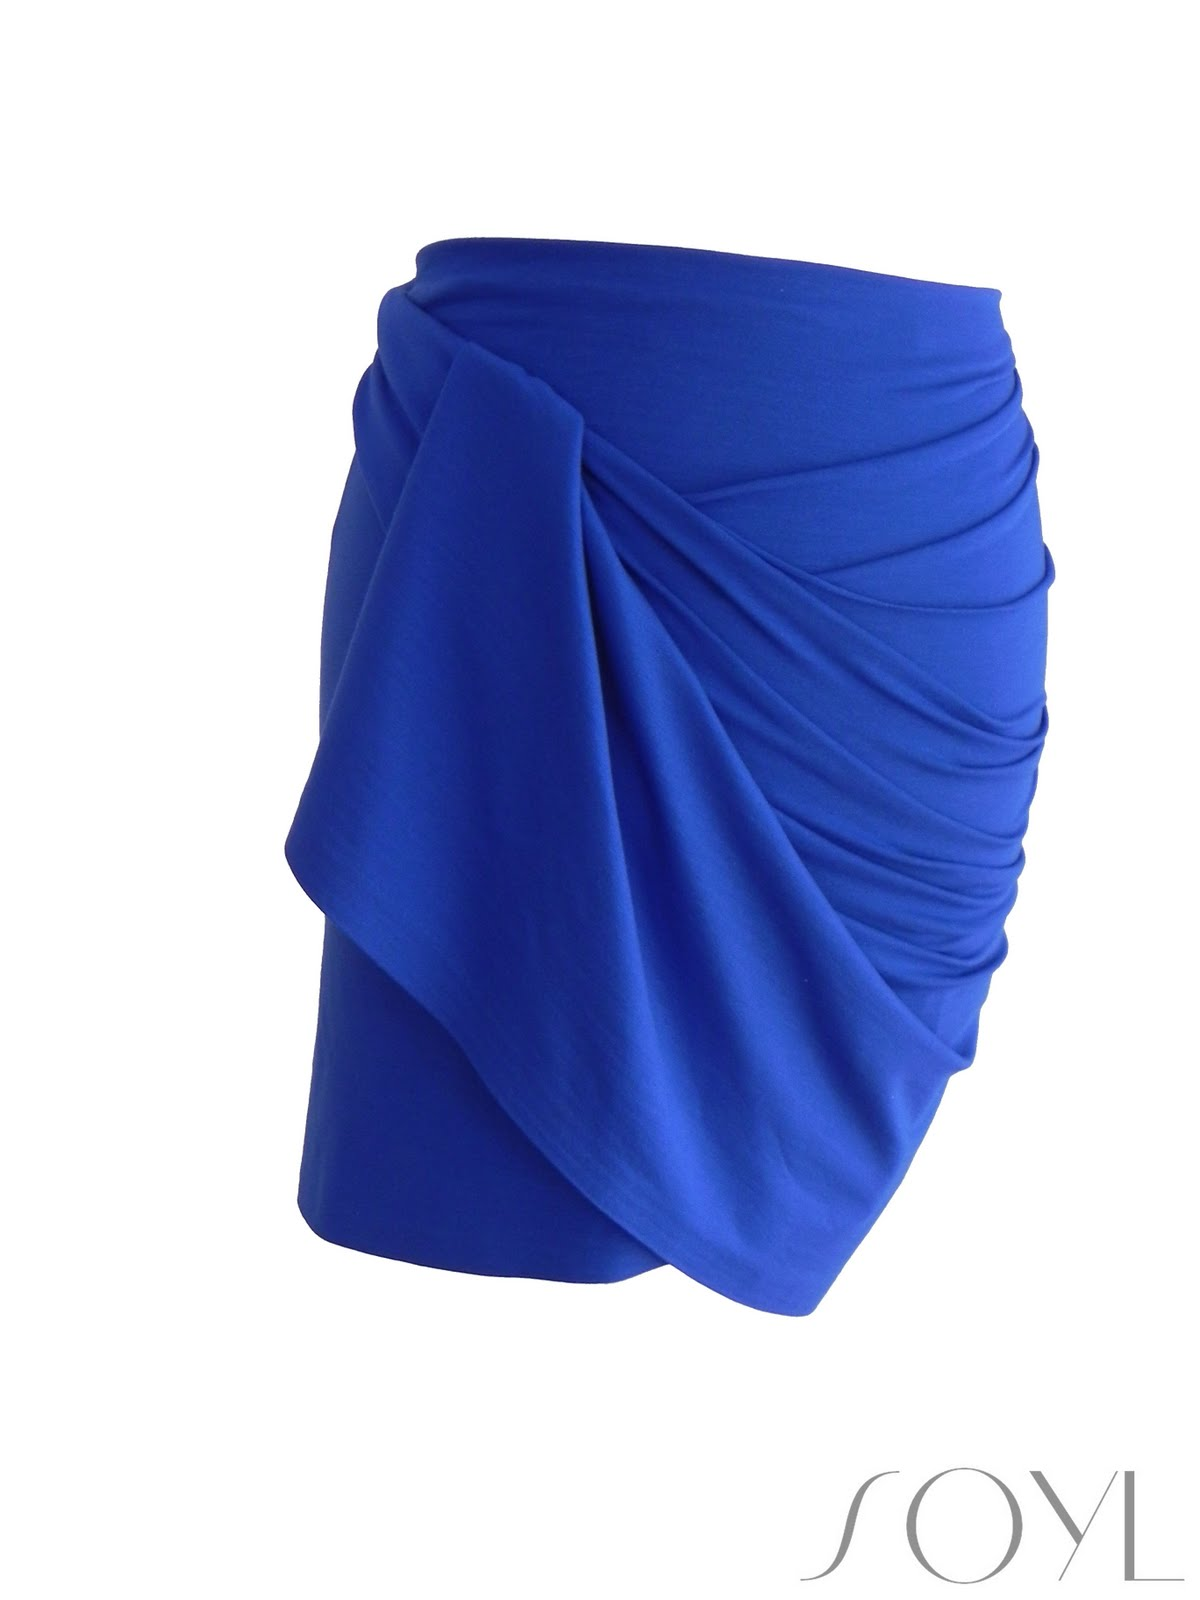 pleated friederich draped blue skirt asymmetrical products green drapes ara azure